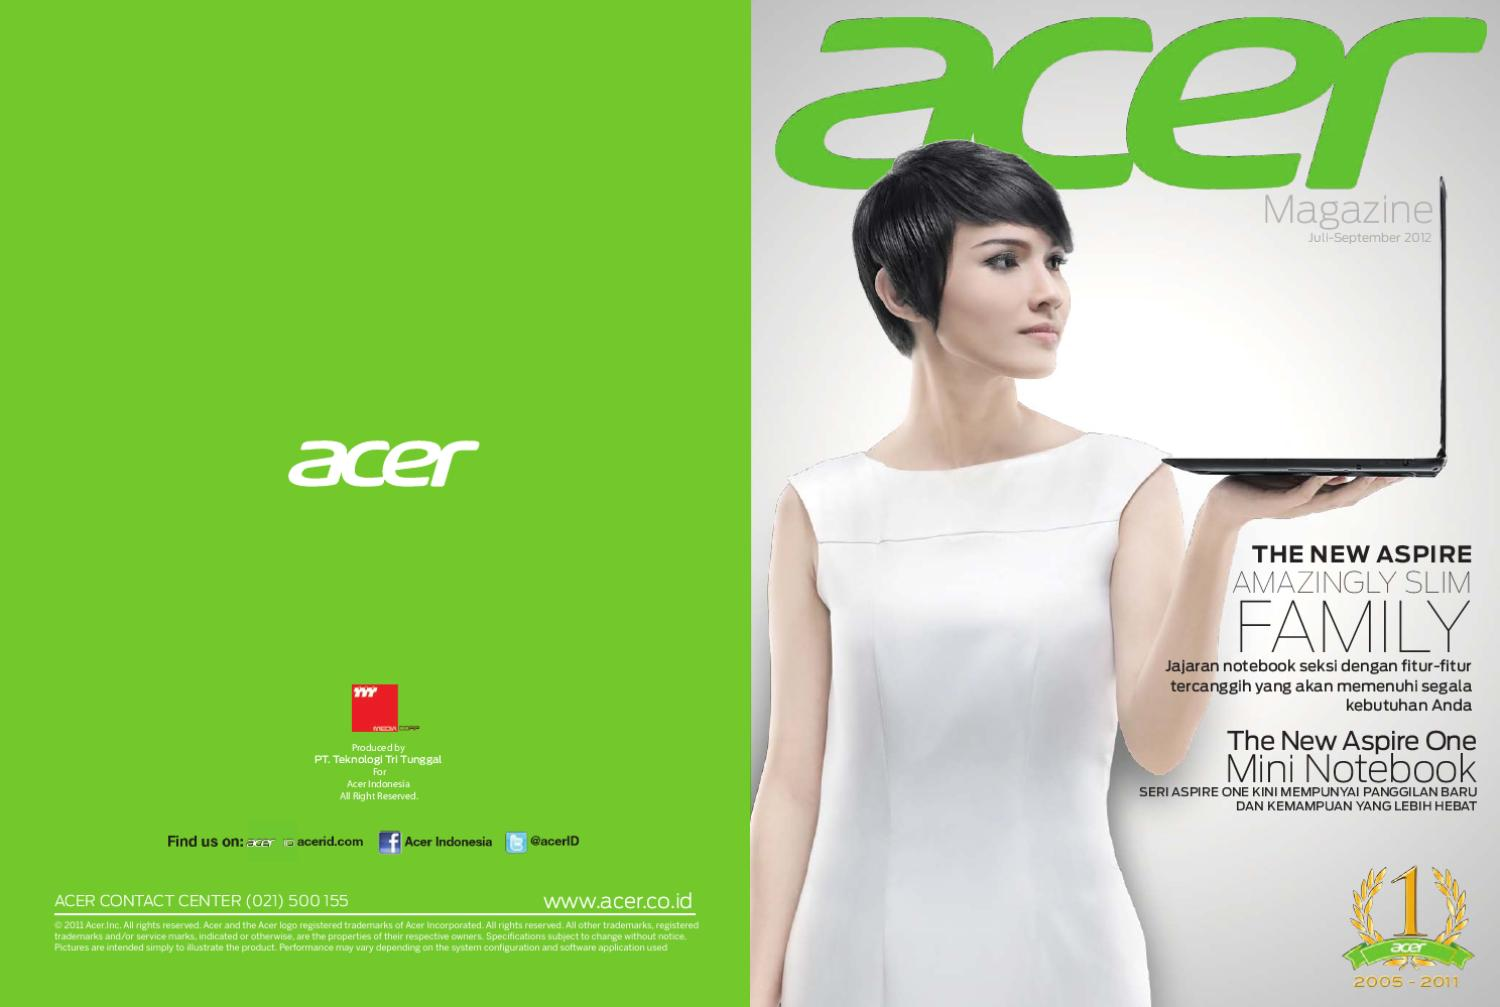 Acer all in one aspire z1650 drivers dwonload for windows 7 8 - Acer All In One Aspire Z1650 Drivers Dwonload For Windows 7 8 41